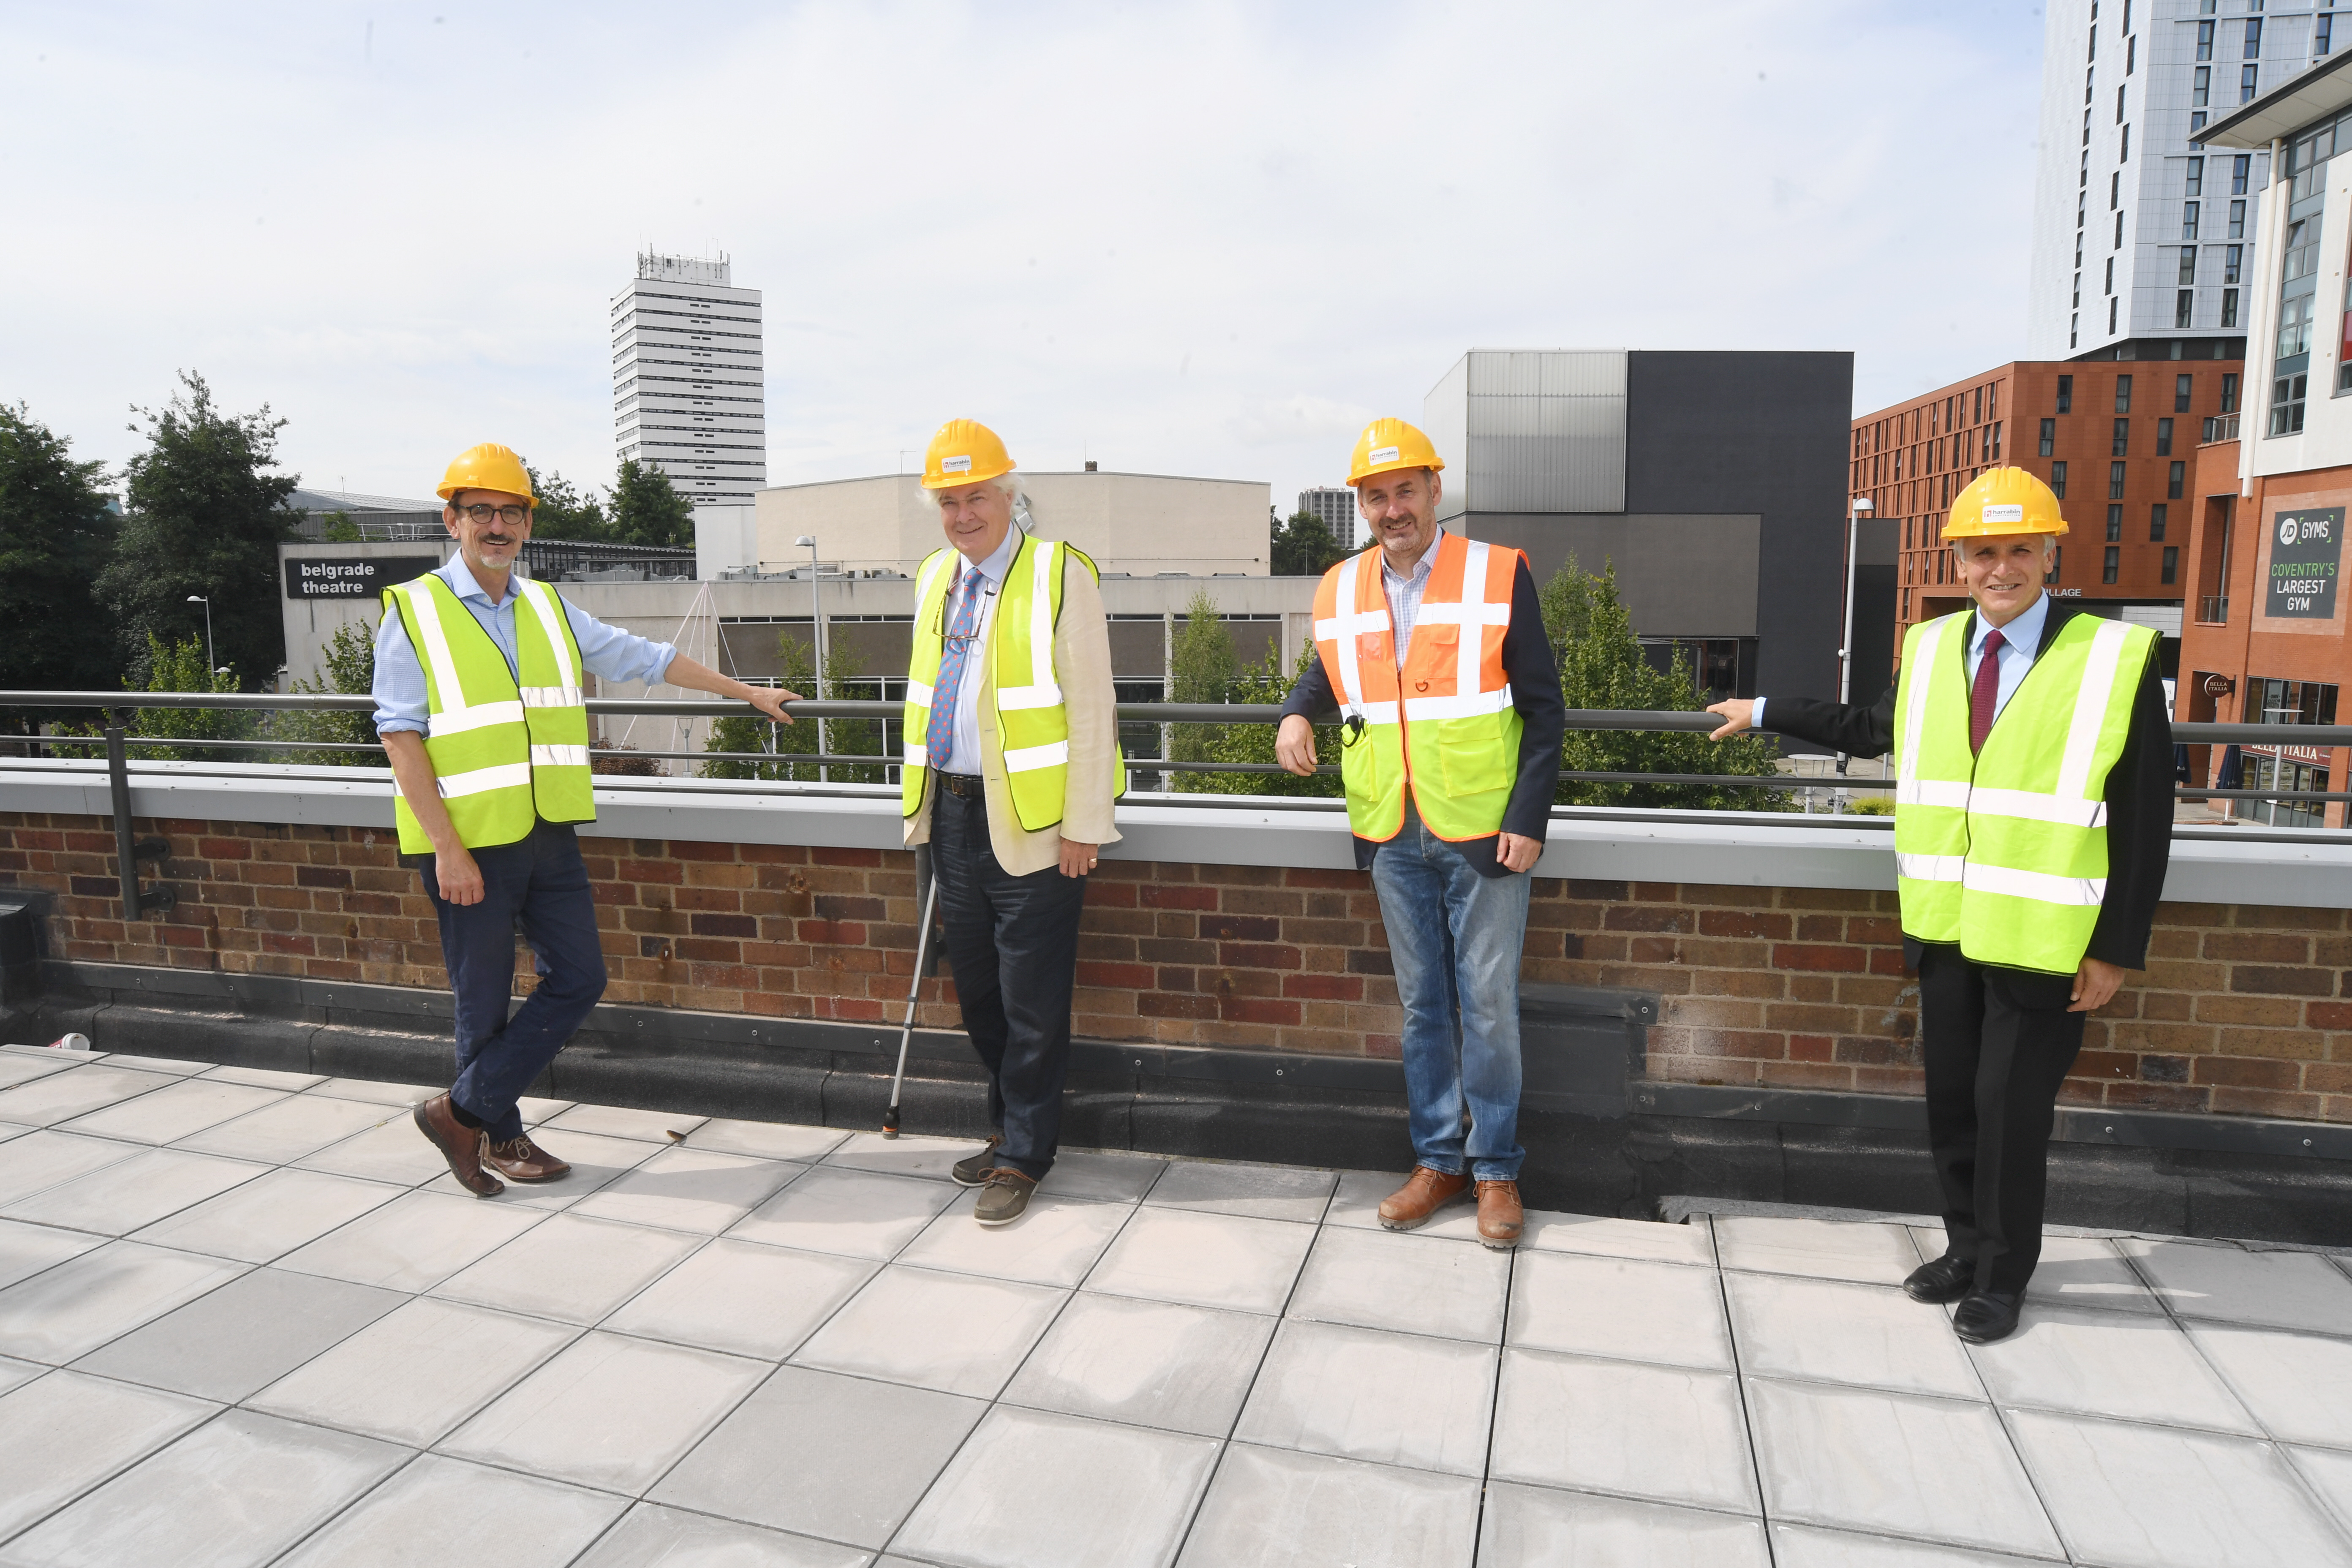 New hotel will bring Coventry swagger